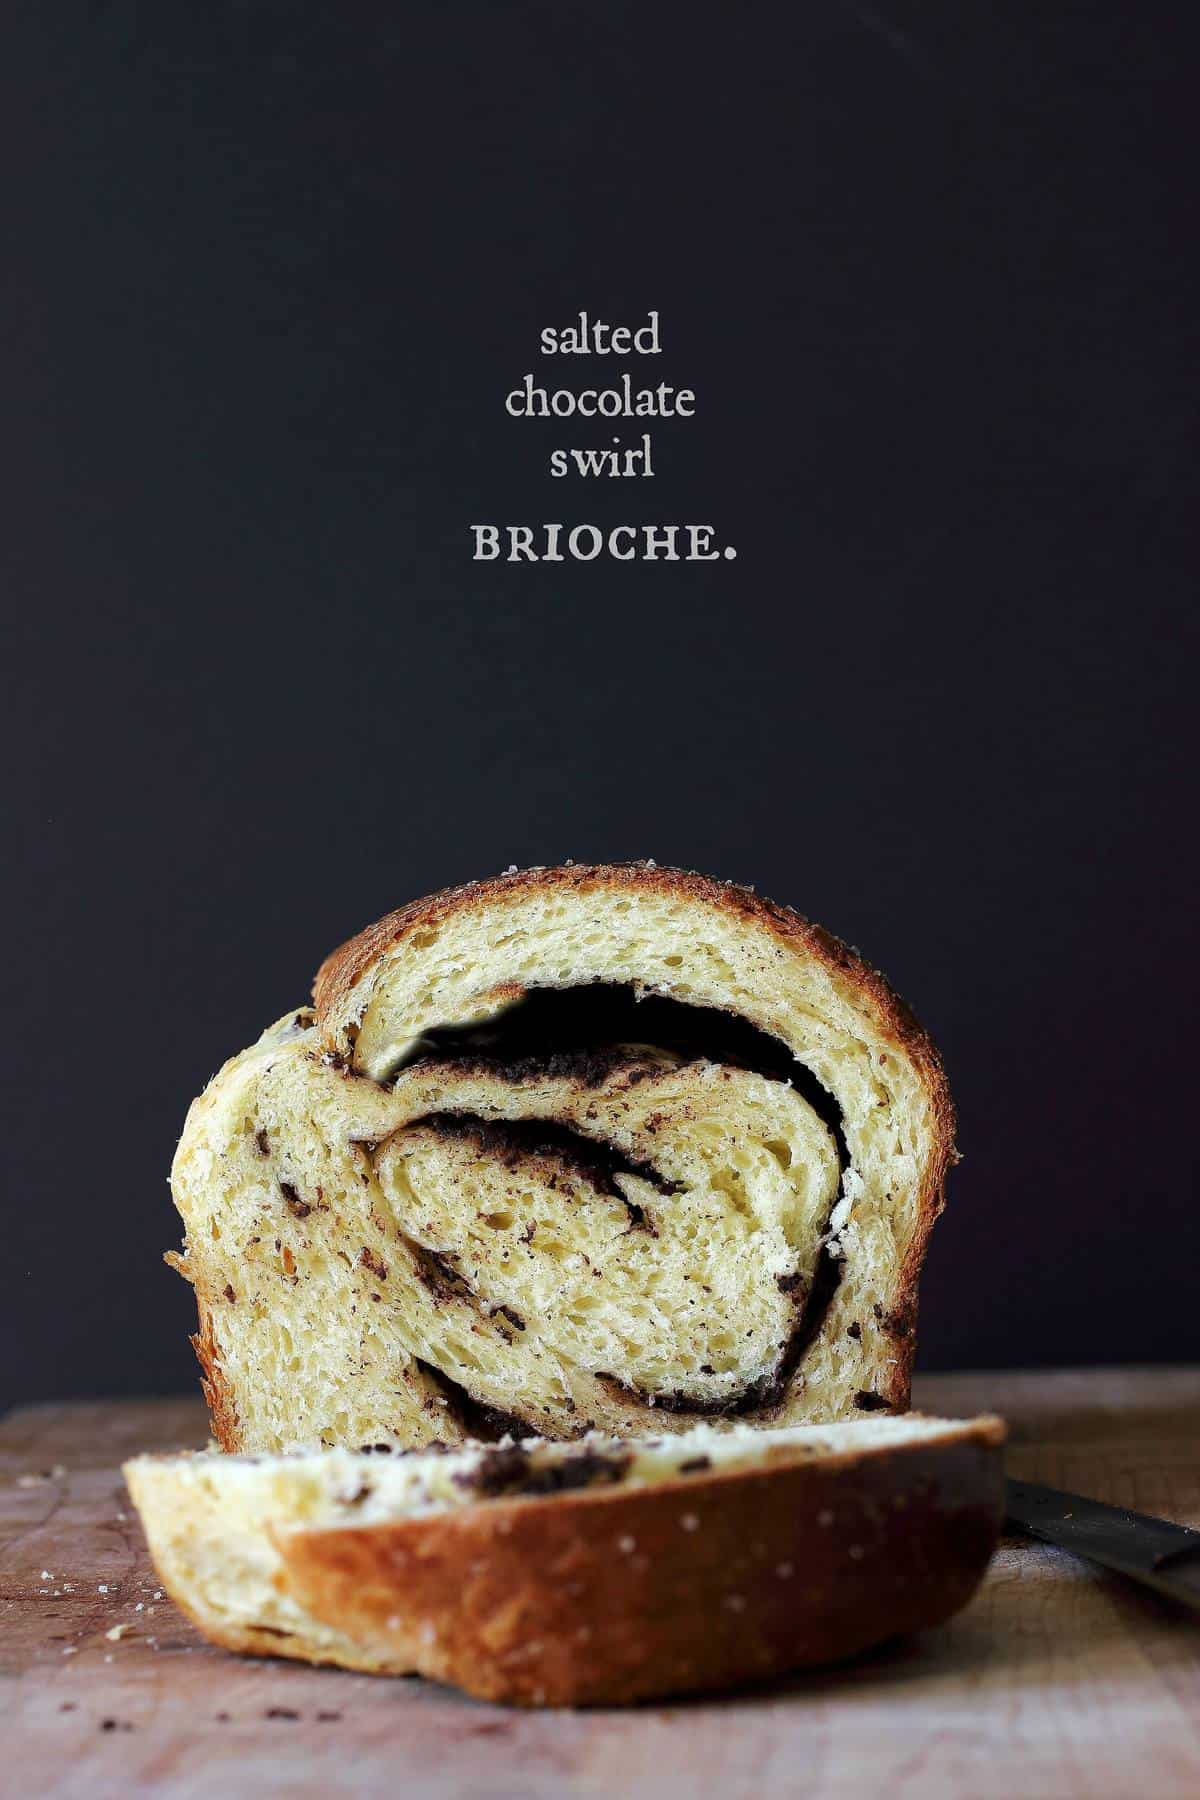 This chocolate brioche bread is rich with sugar and eggs, a classic brioche. The inside has a chocolate swirl filling and the top is sprinkled with sea salt